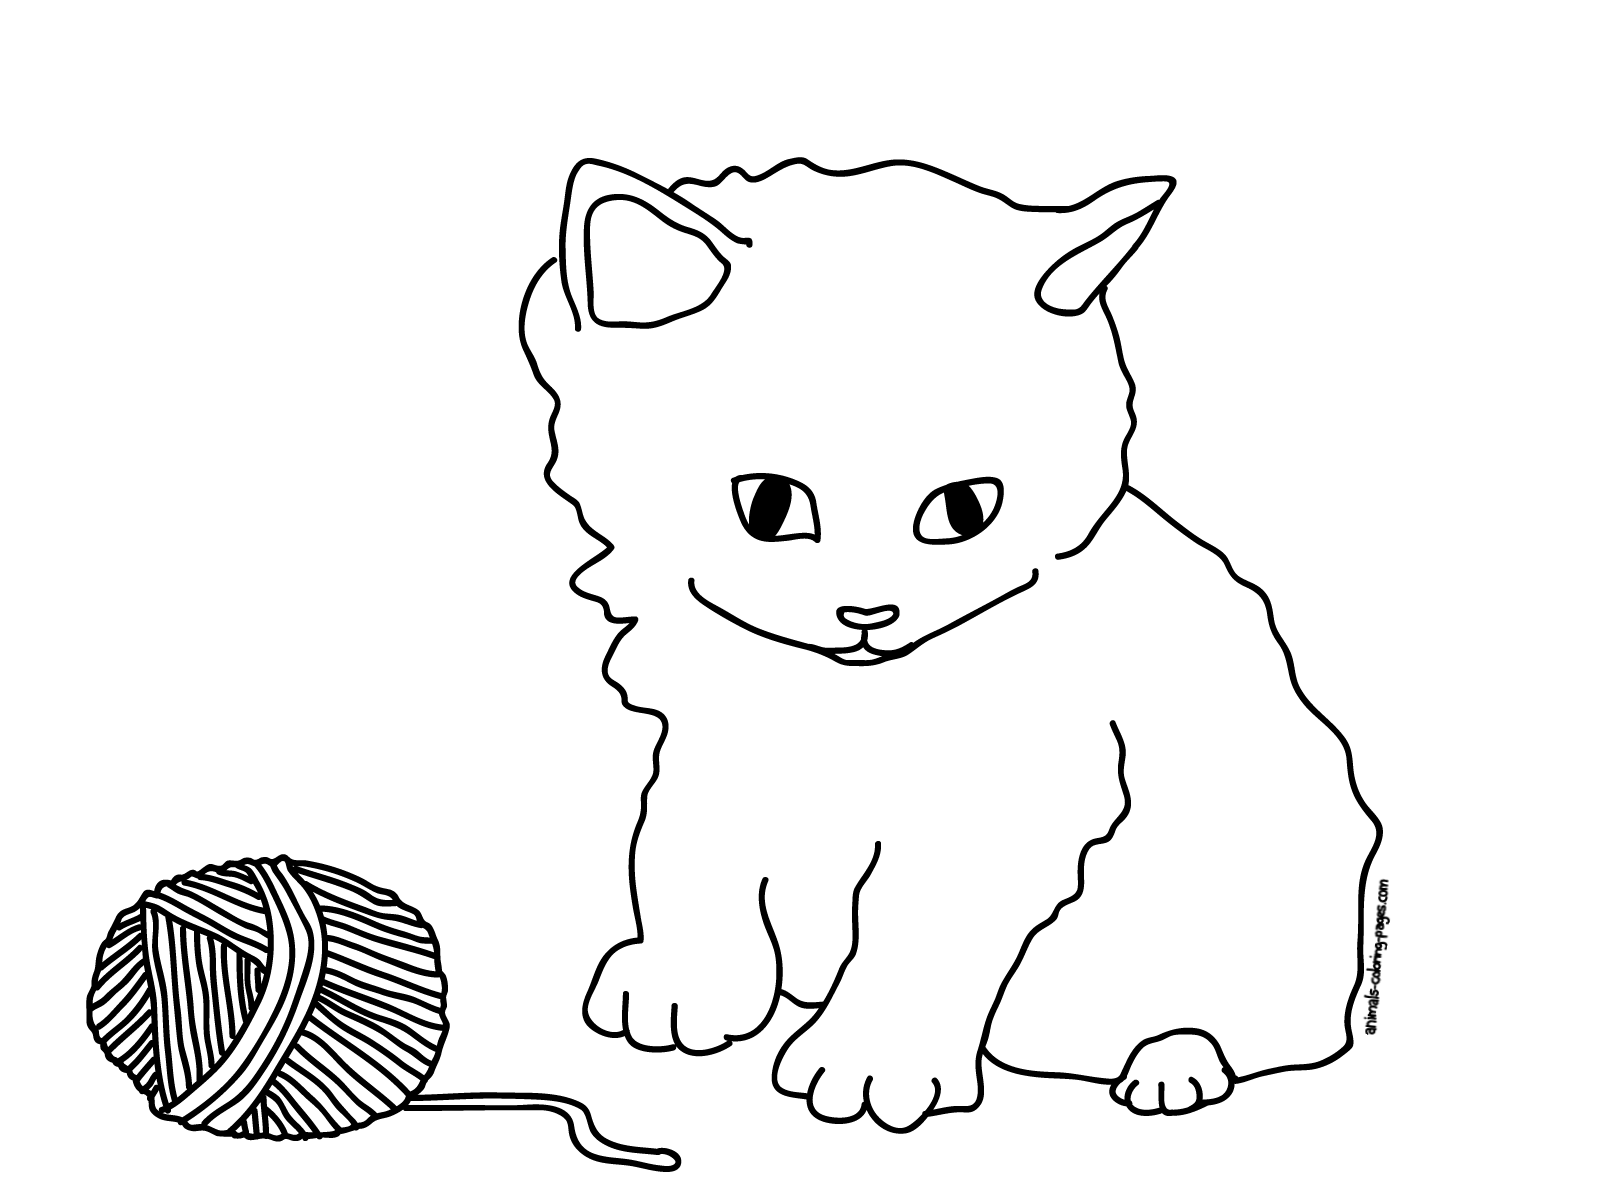 free printable cat pictures to color free printable cat coloring pages for kids color to pictures free printable cat